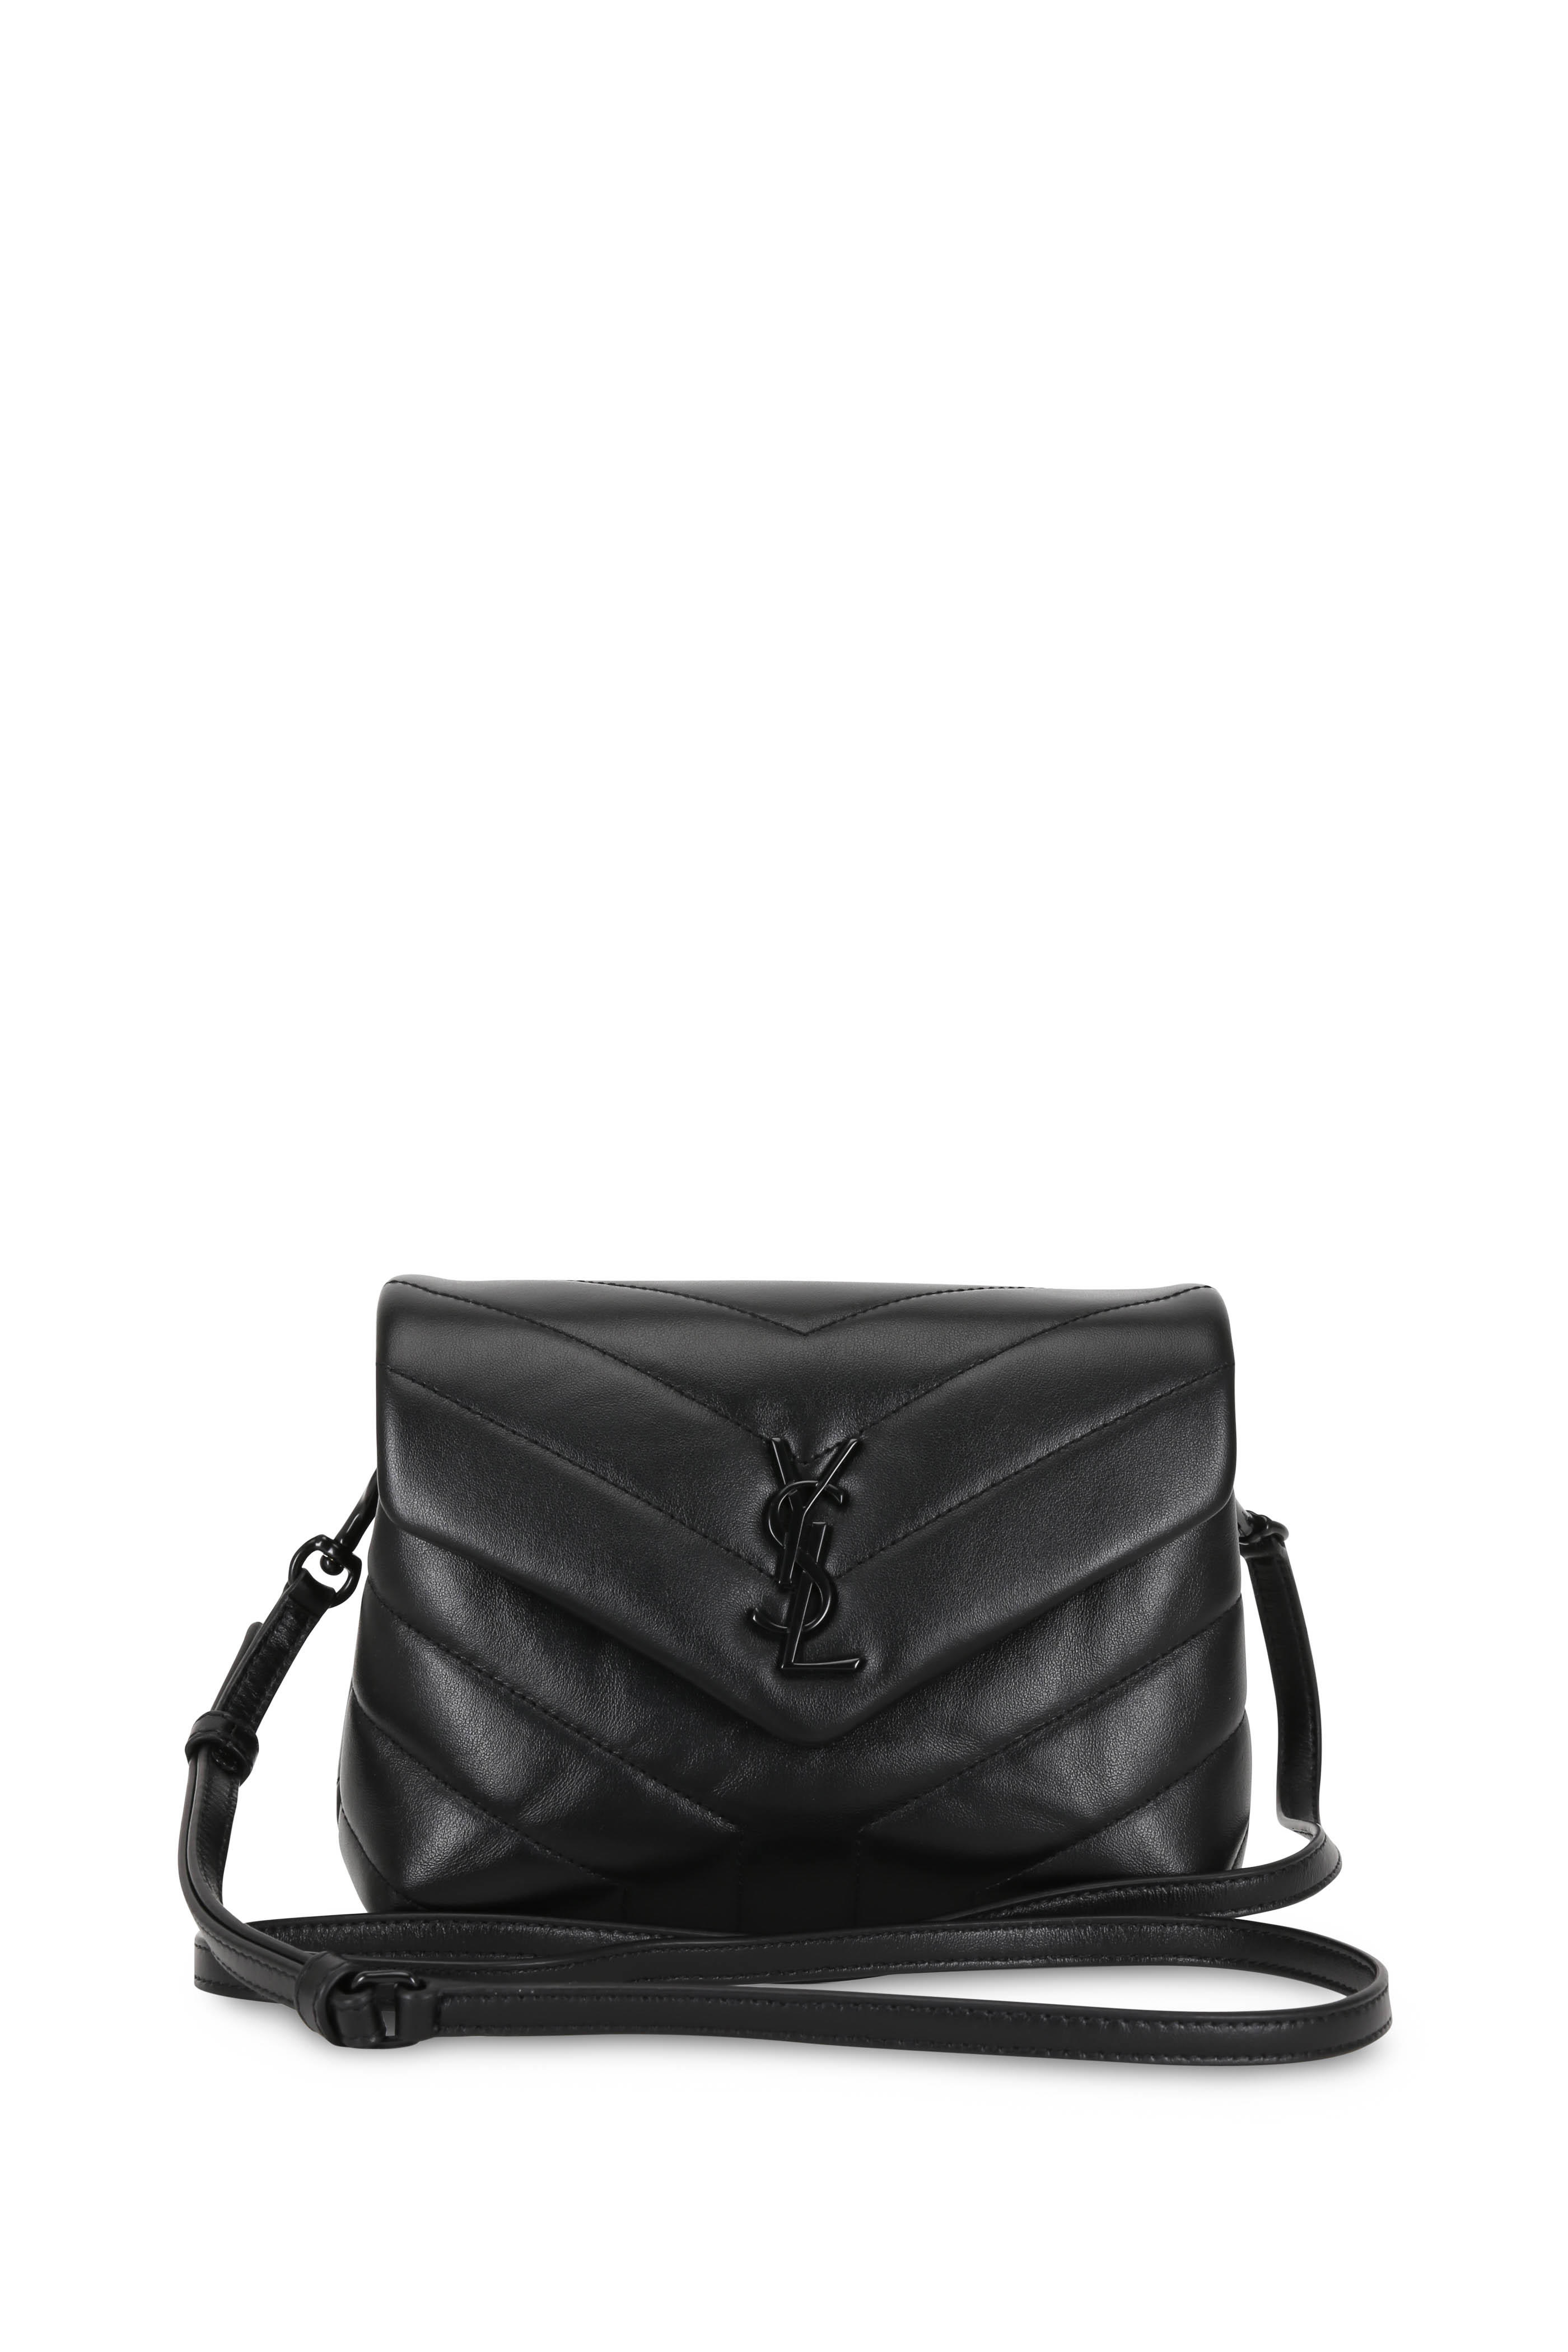 d93dbcdc94 Saint Laurent - Loulou Toy Black Quilted Leather Mini Bag | Mitchell ...